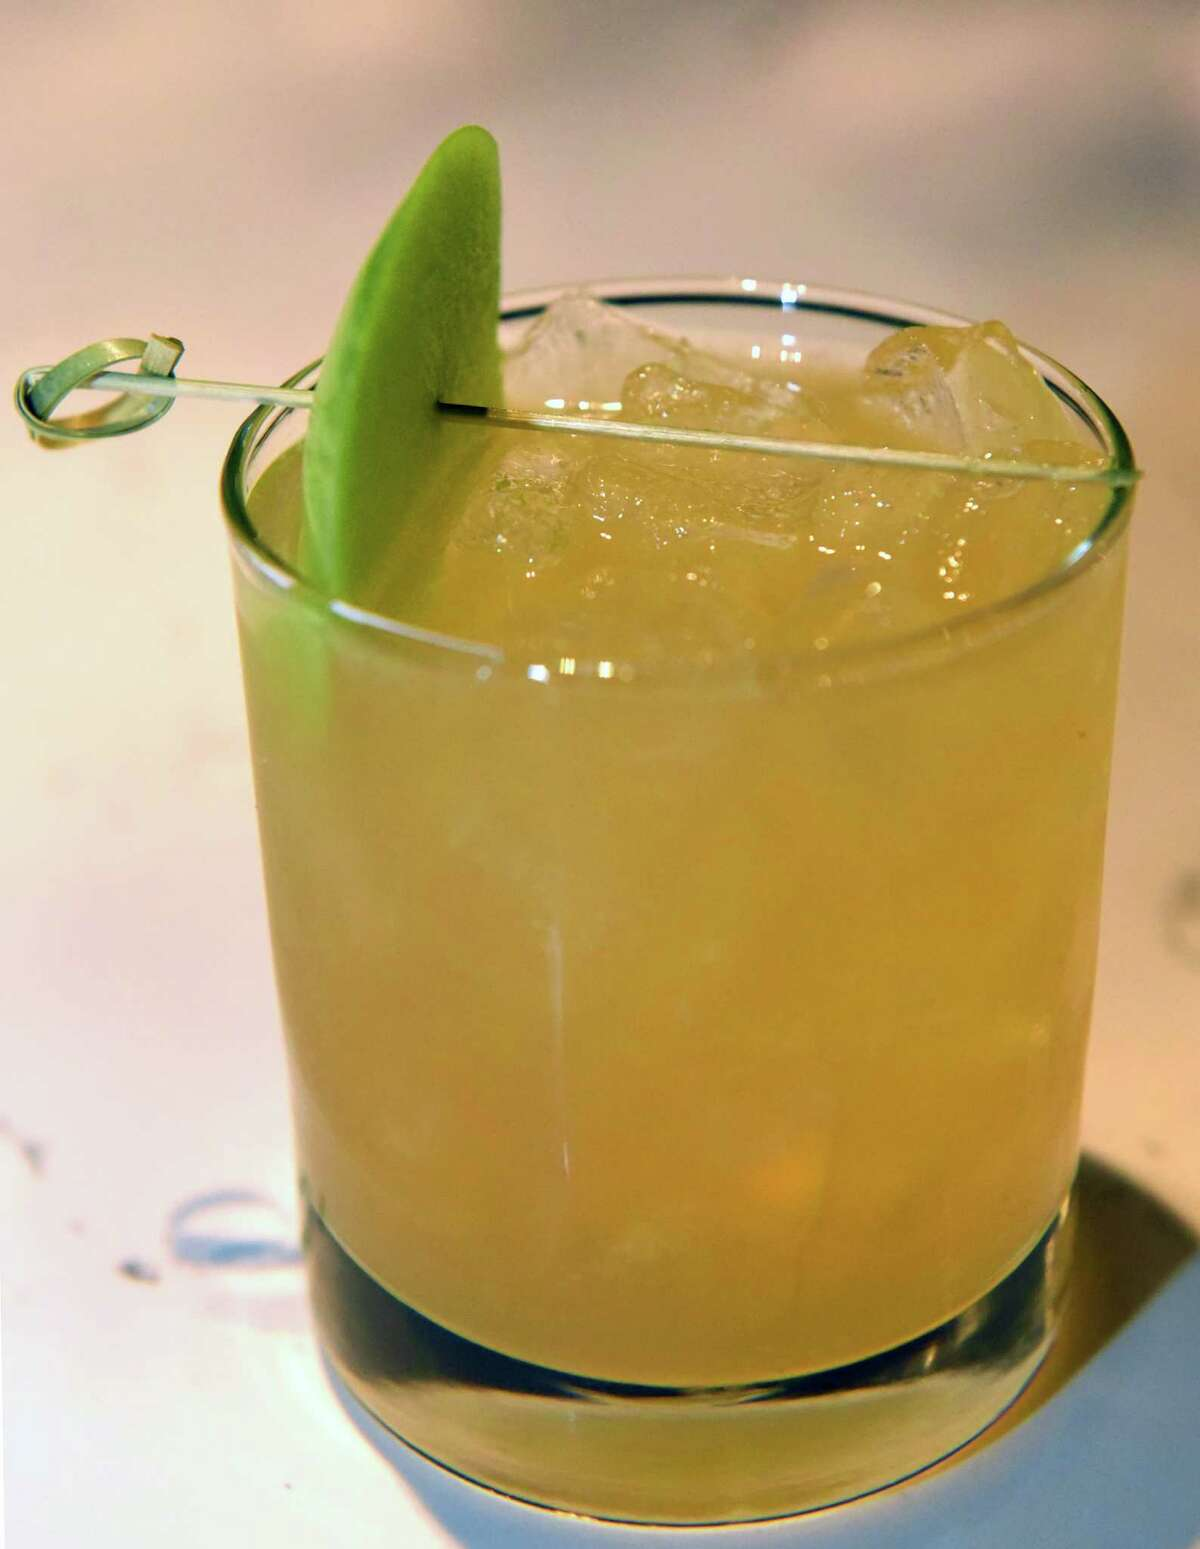 Bartender Kyle Cerutti's President Martin Van Buren inspired cocktail at 677 Prime on Friday Dec. 23, 2016 in Albany N.Y. (Michael P. Farrell/Times Union)